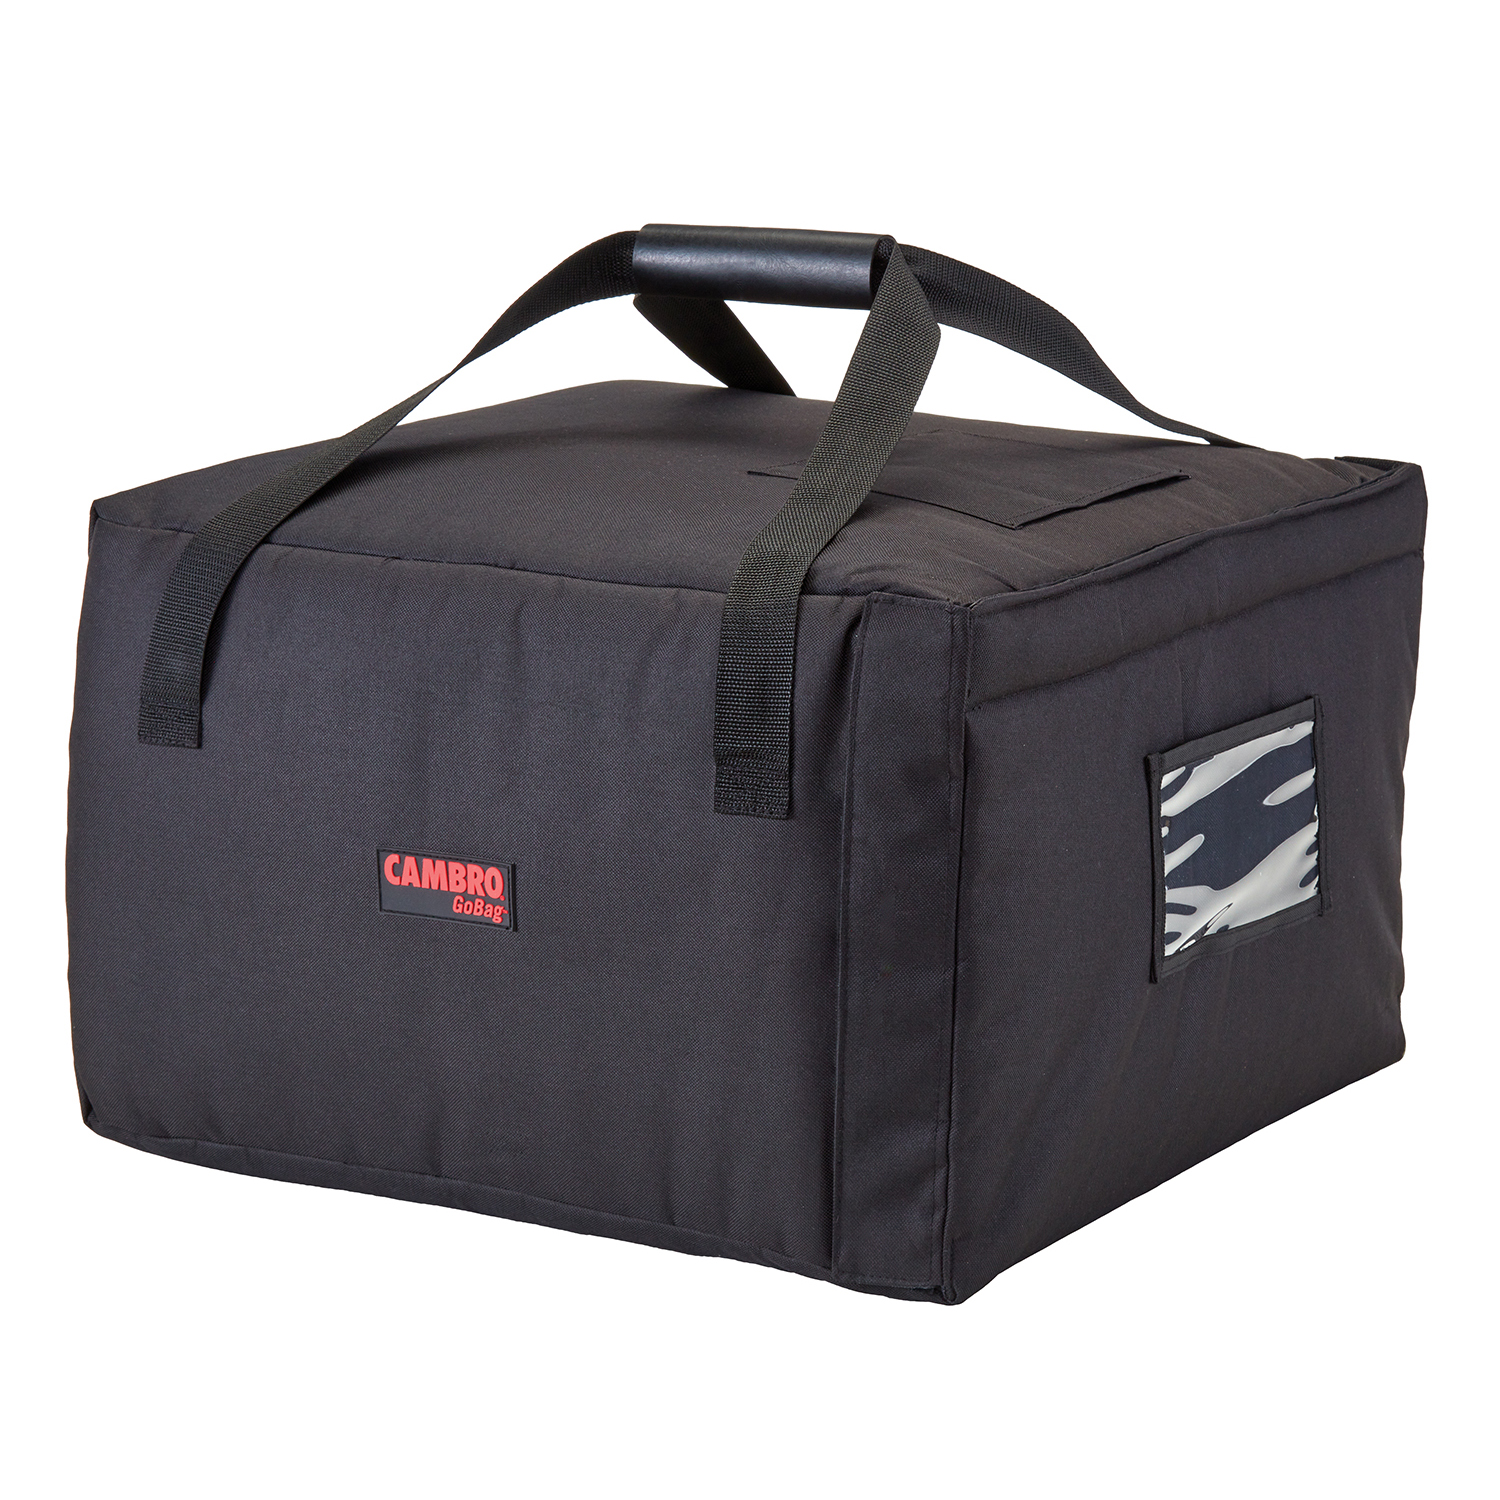 Cambro GBP518110 pizza delivery bag